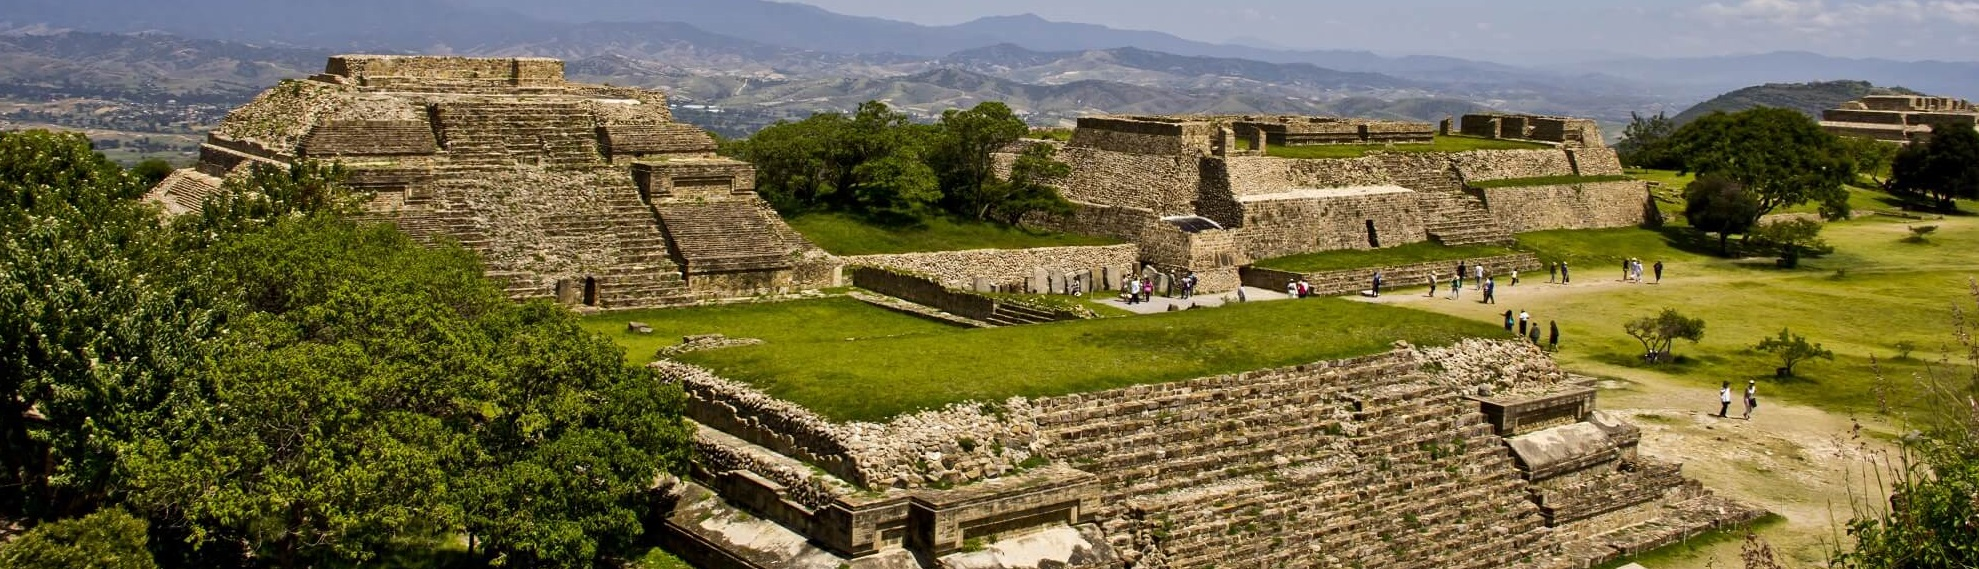 Mexico And Guatemala Meso-American Civilizations